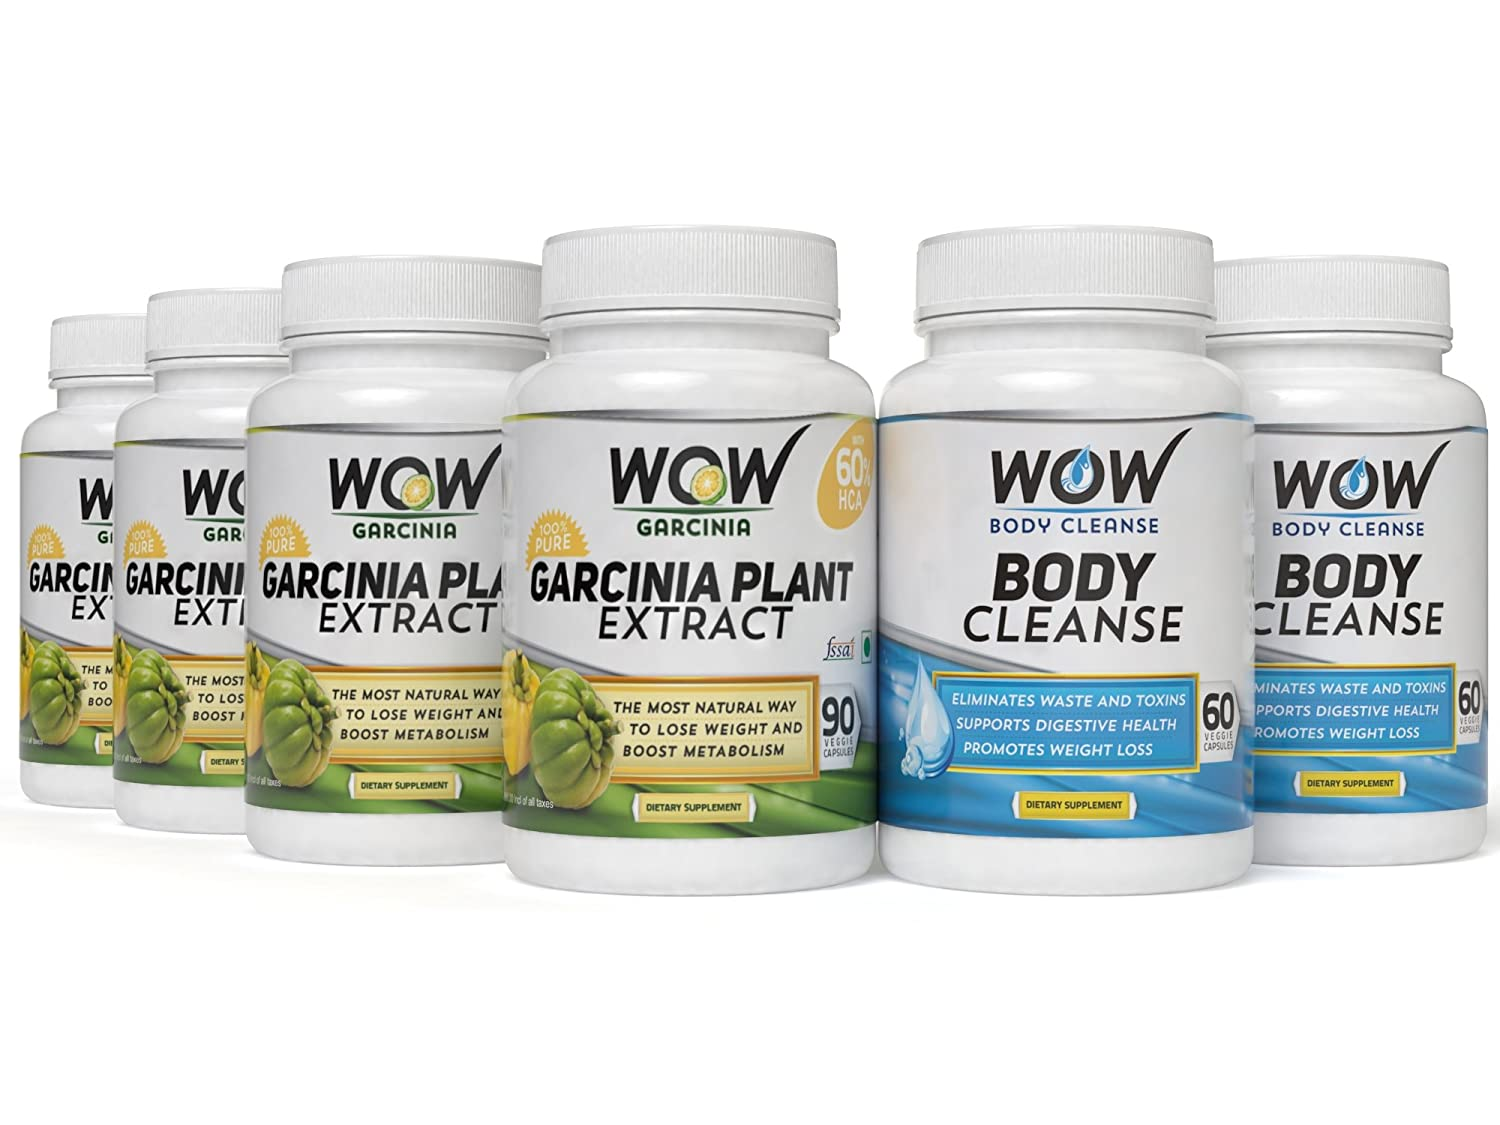 where can i buy garcinia wow and amazing cleanse